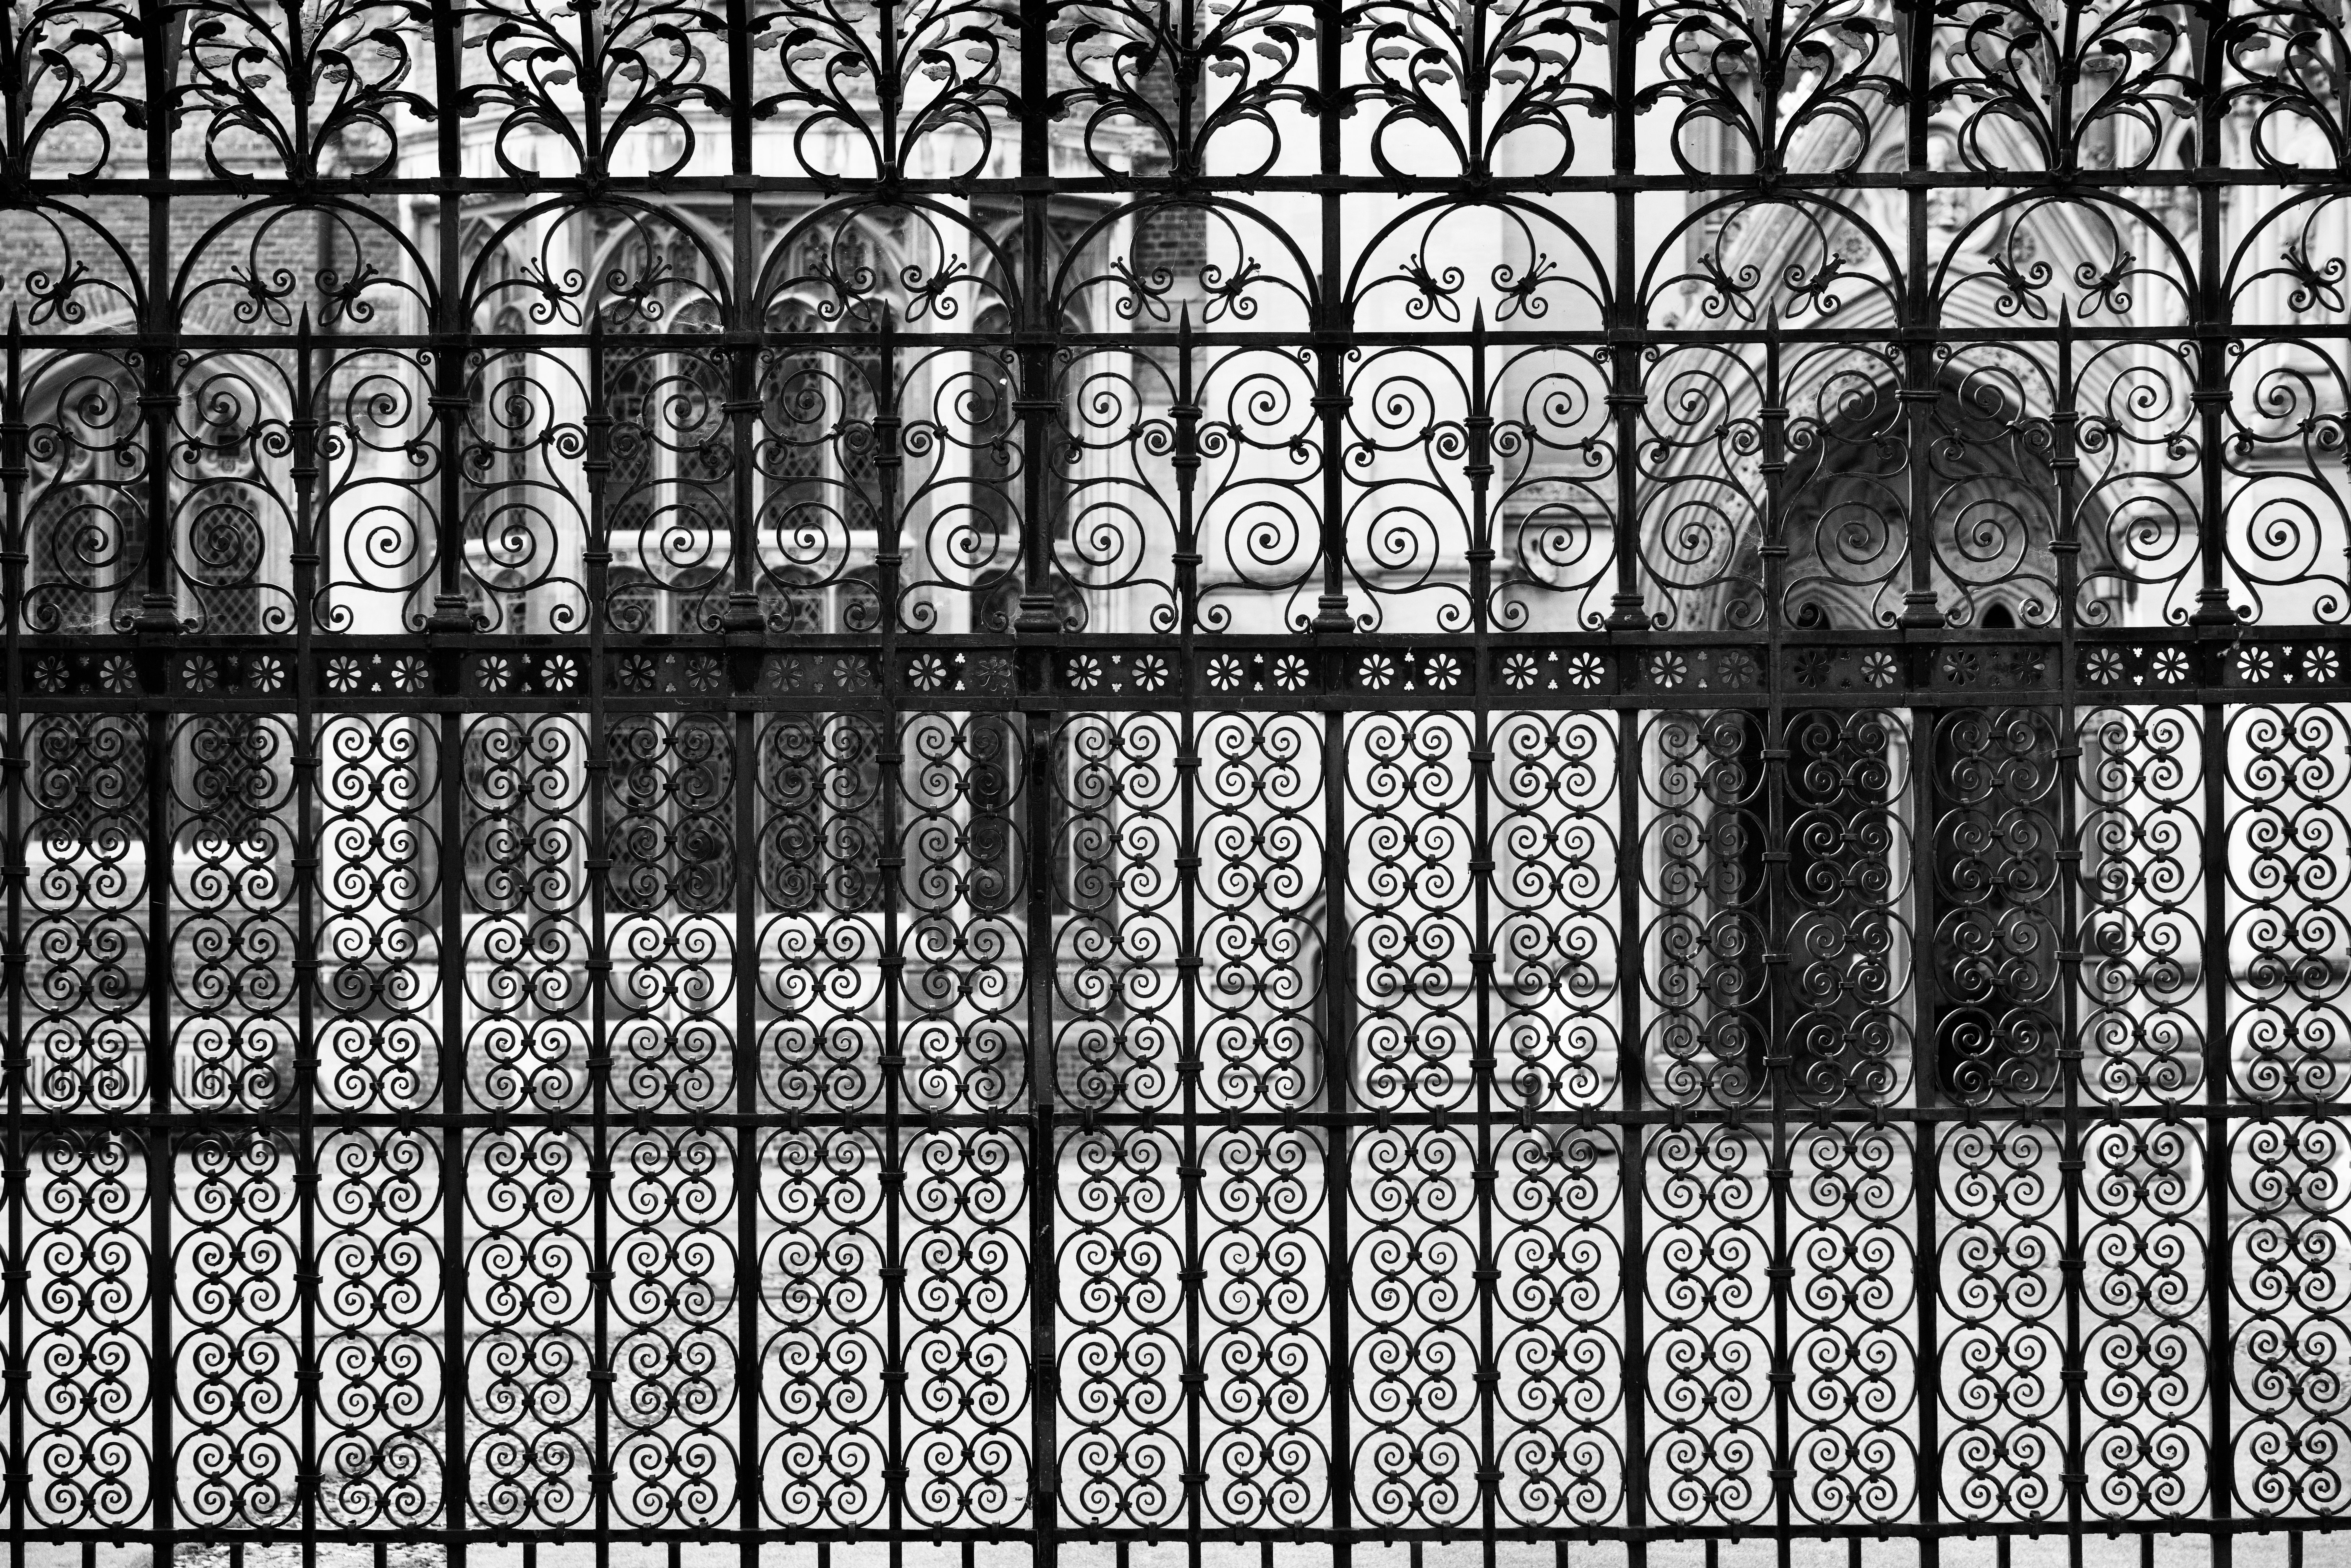 The wrought iron work